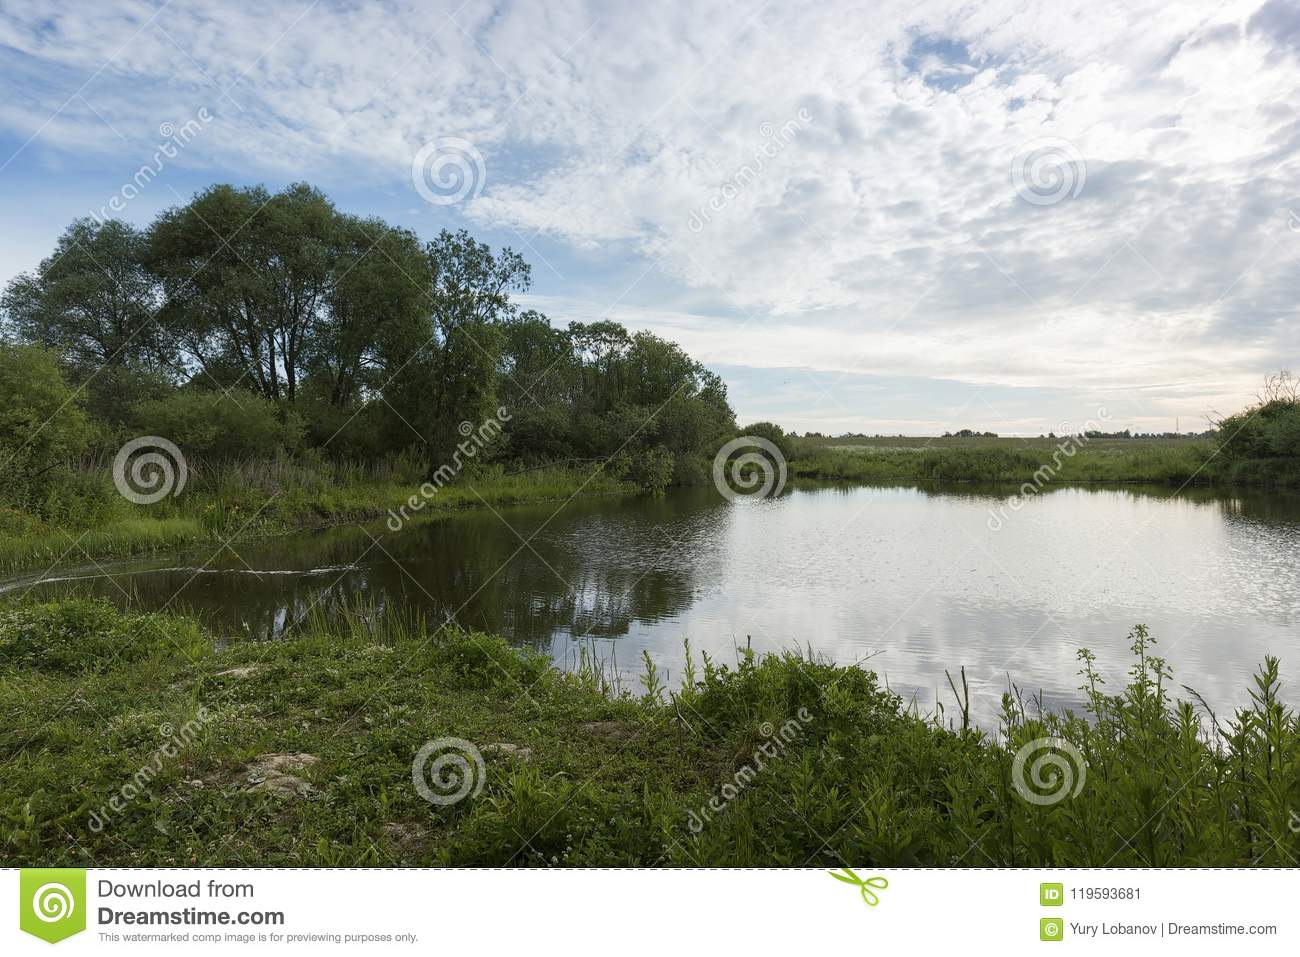 A picturesque pond with overgrown green banks and clouds in the blue sky.